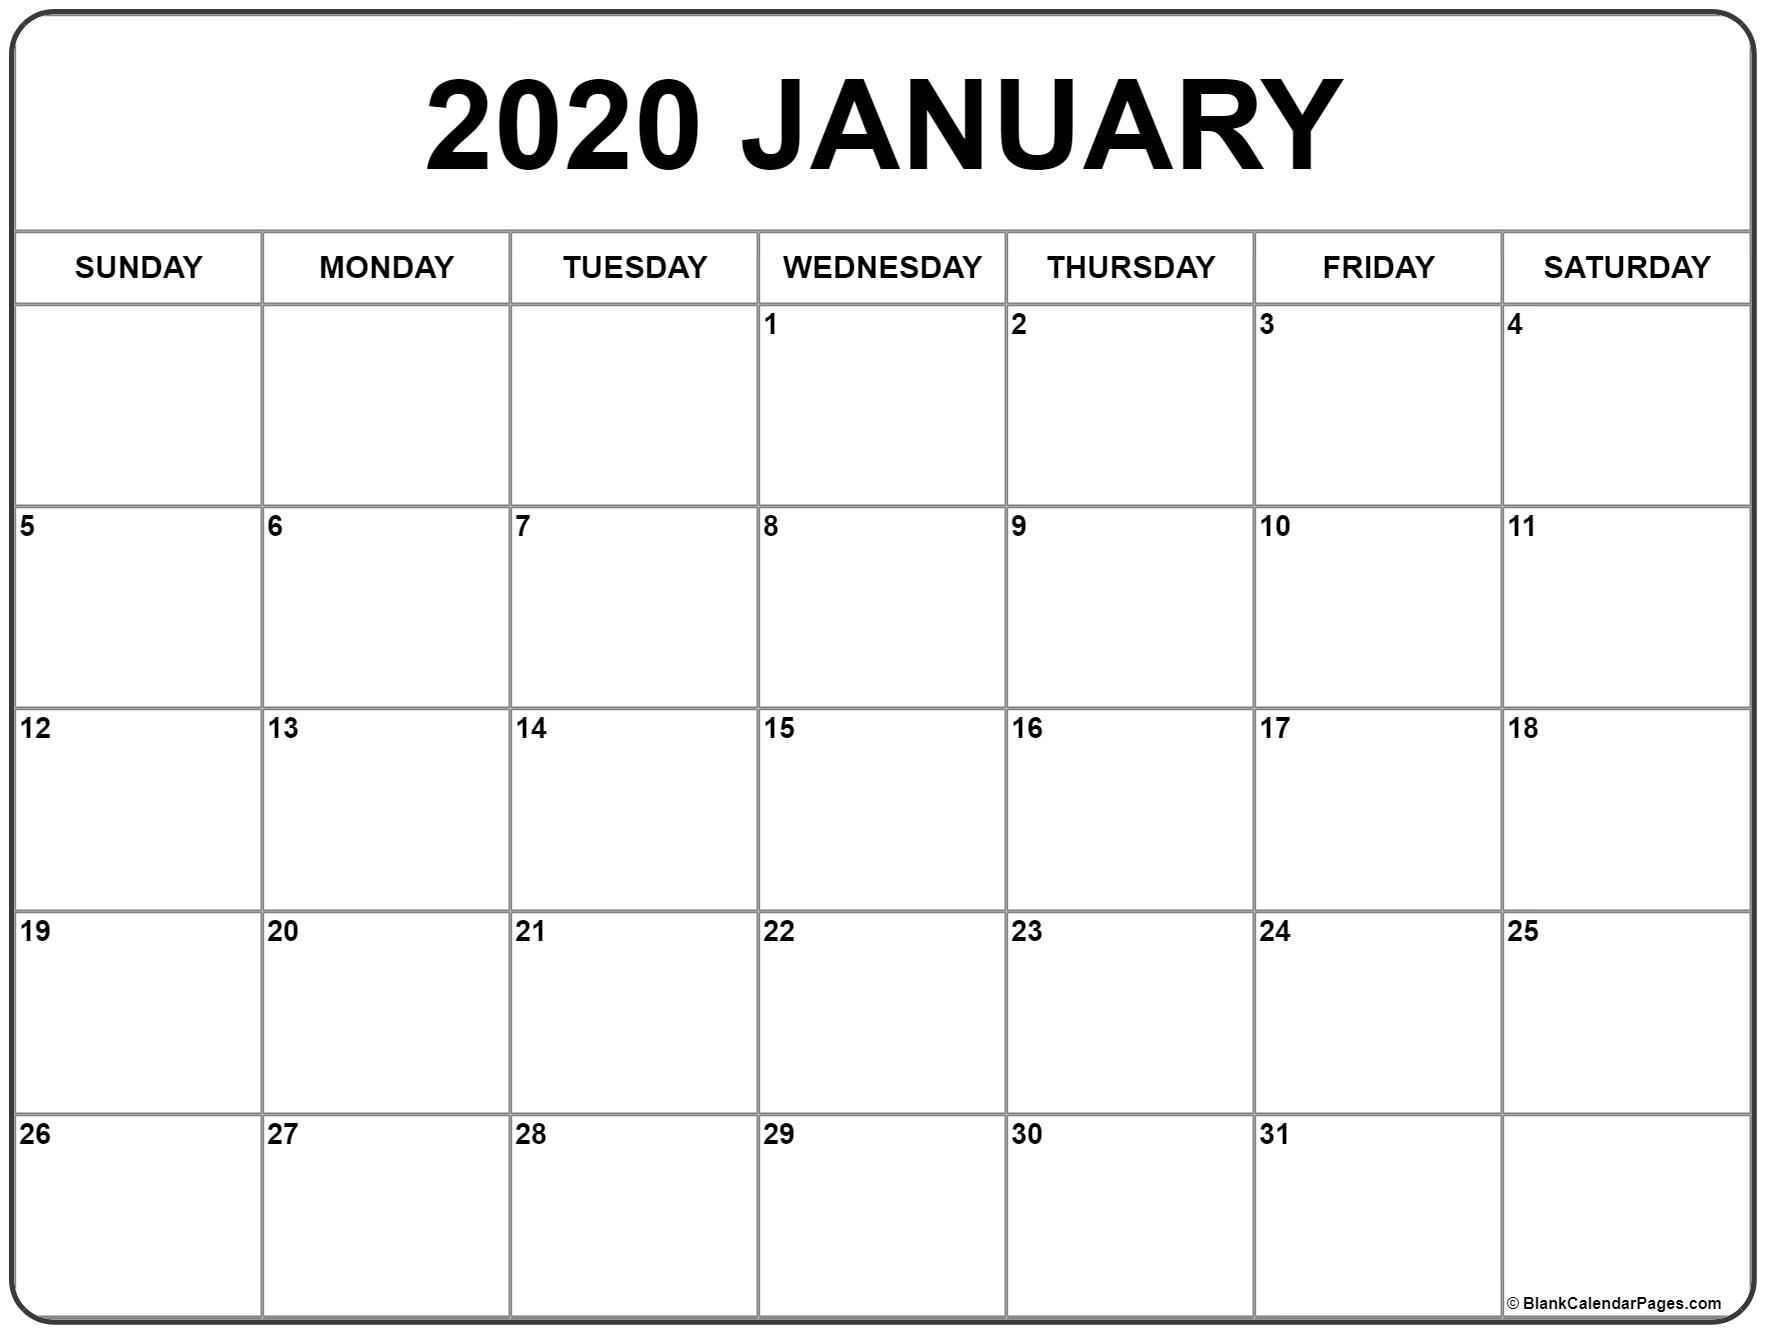 Monthly Calendar 2020 Printable - Togo.wpart.co